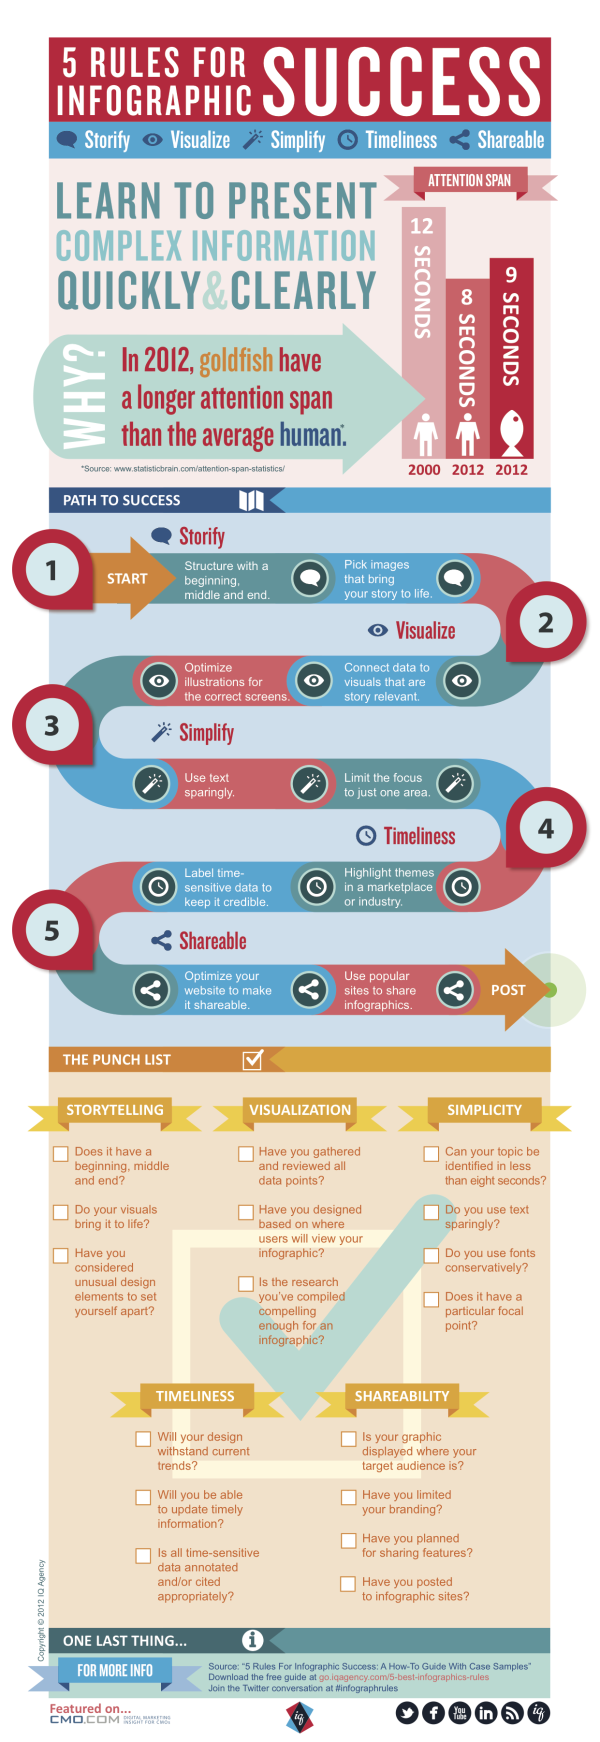 5 rules for infographics success Its not just enough to create an infographic and slap it on your website You want to make it visually appealing informative and most of a...